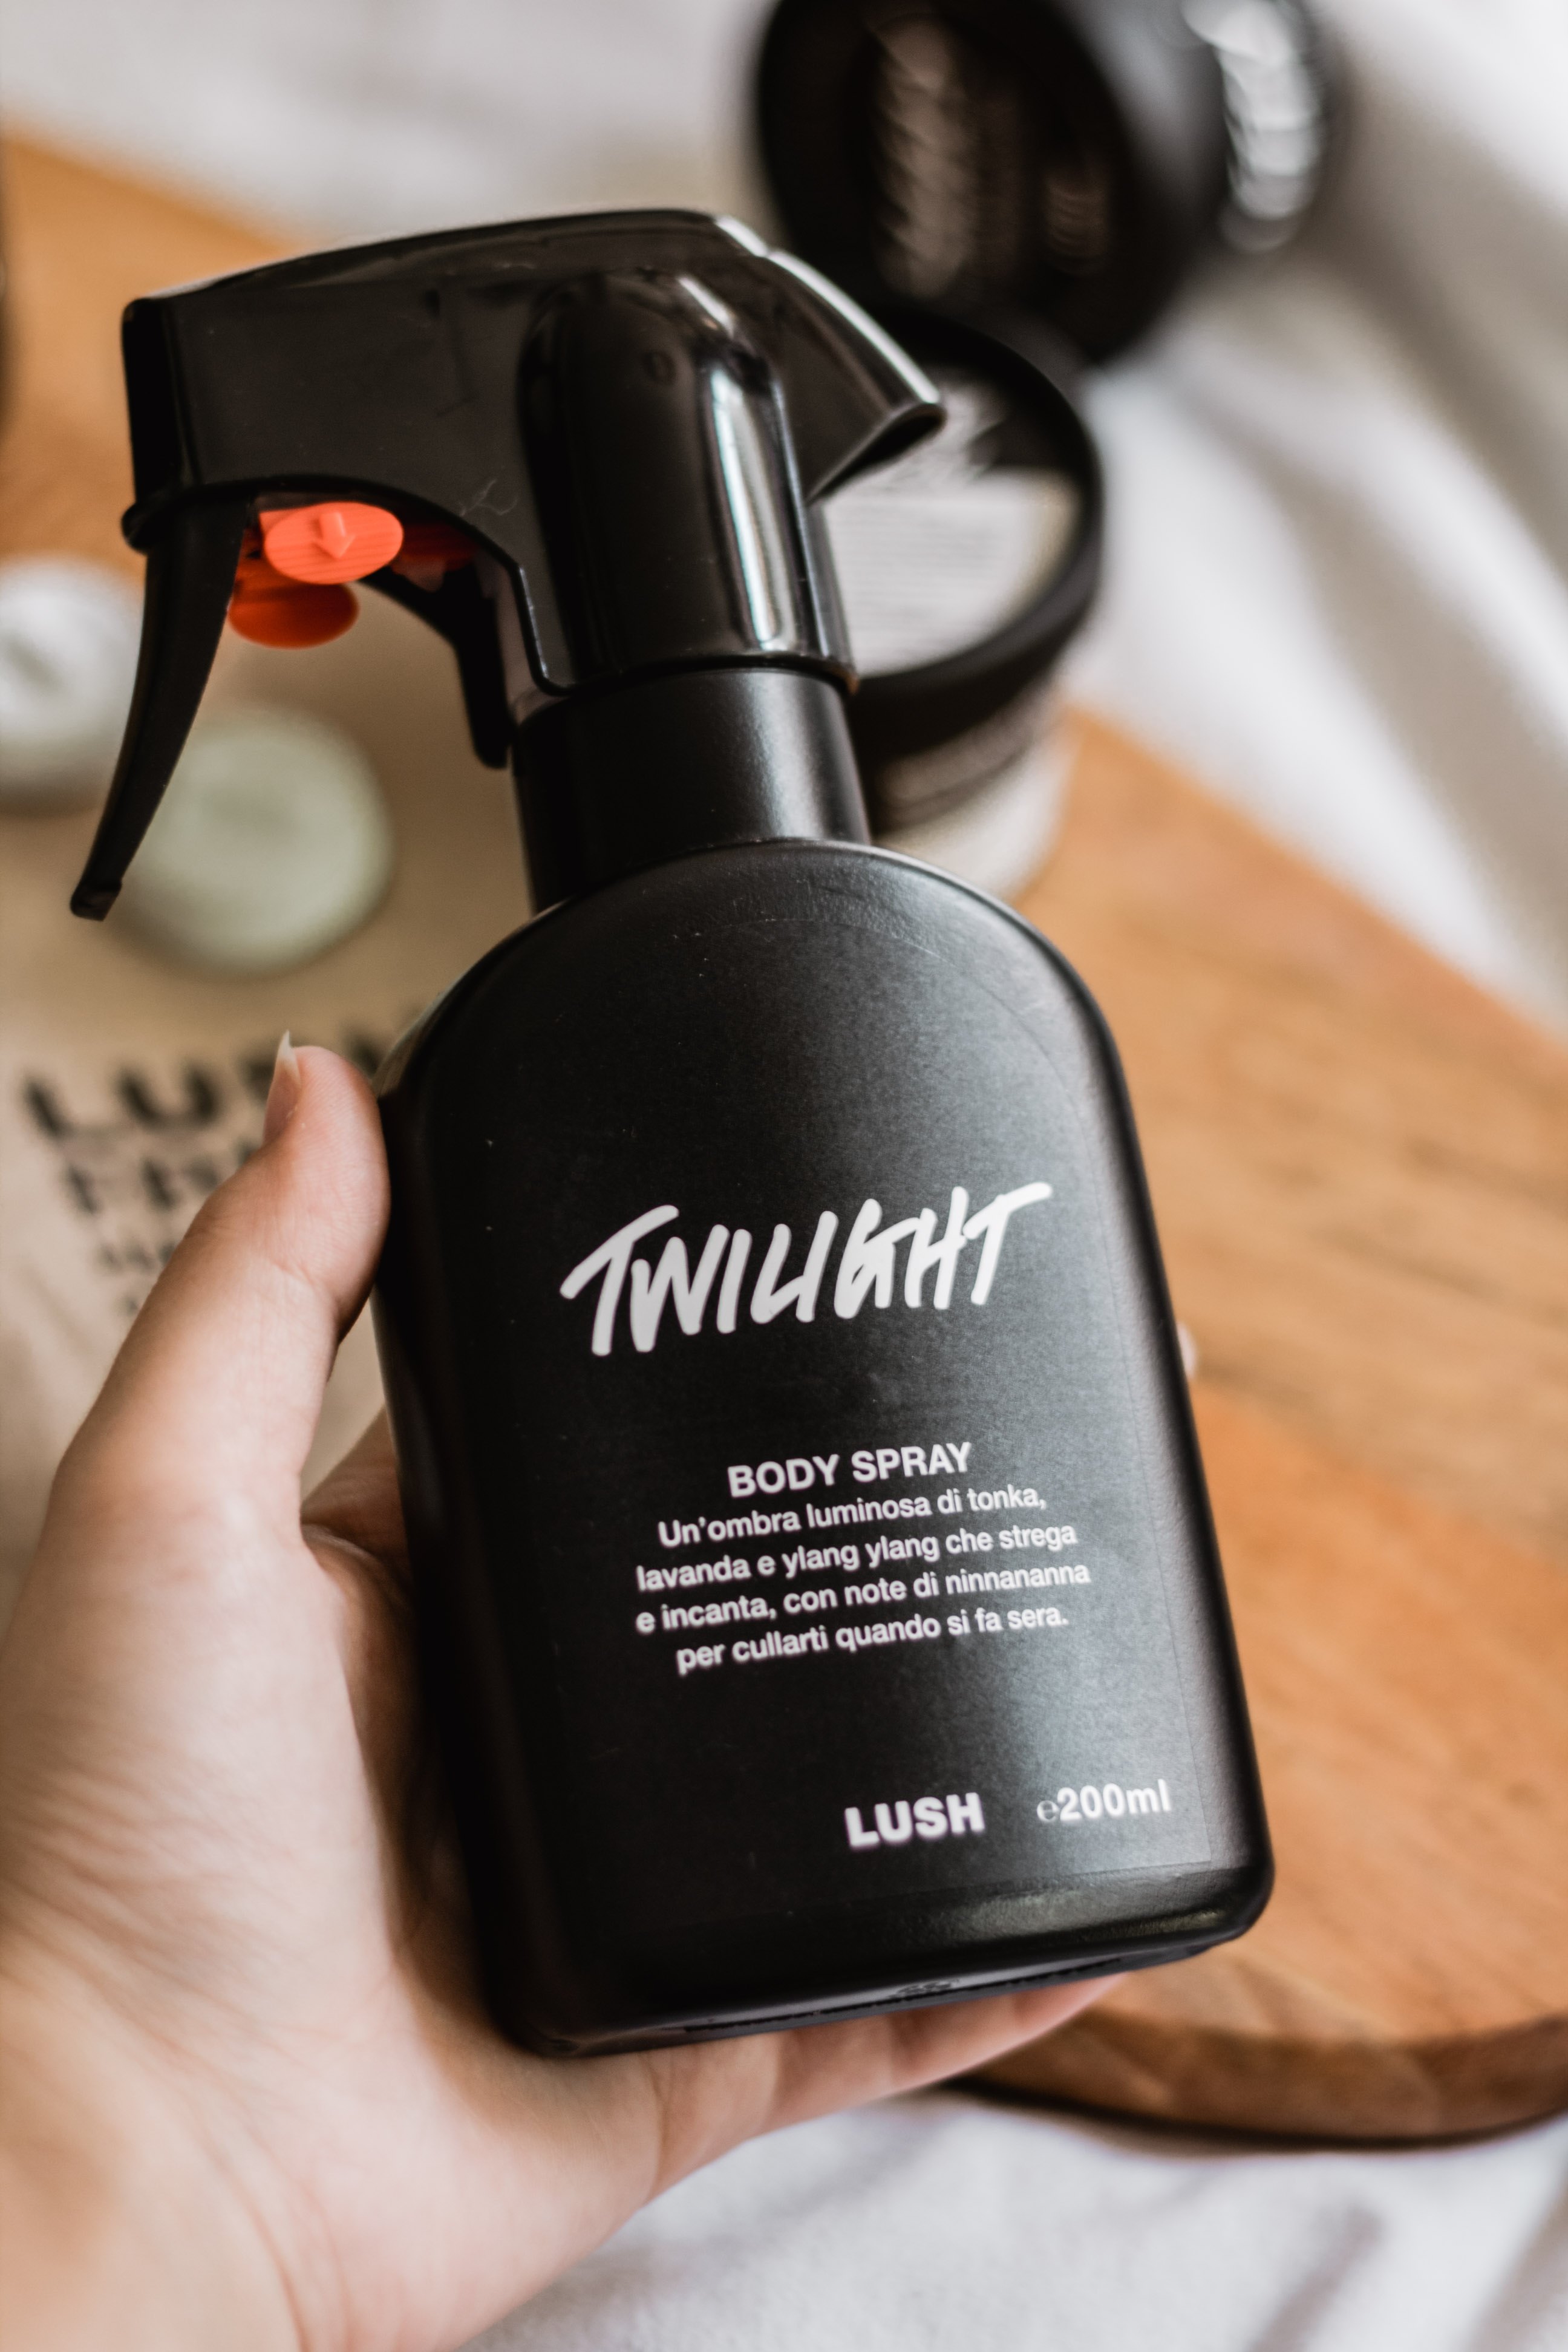 Lush Haul - Twilight Body Spray